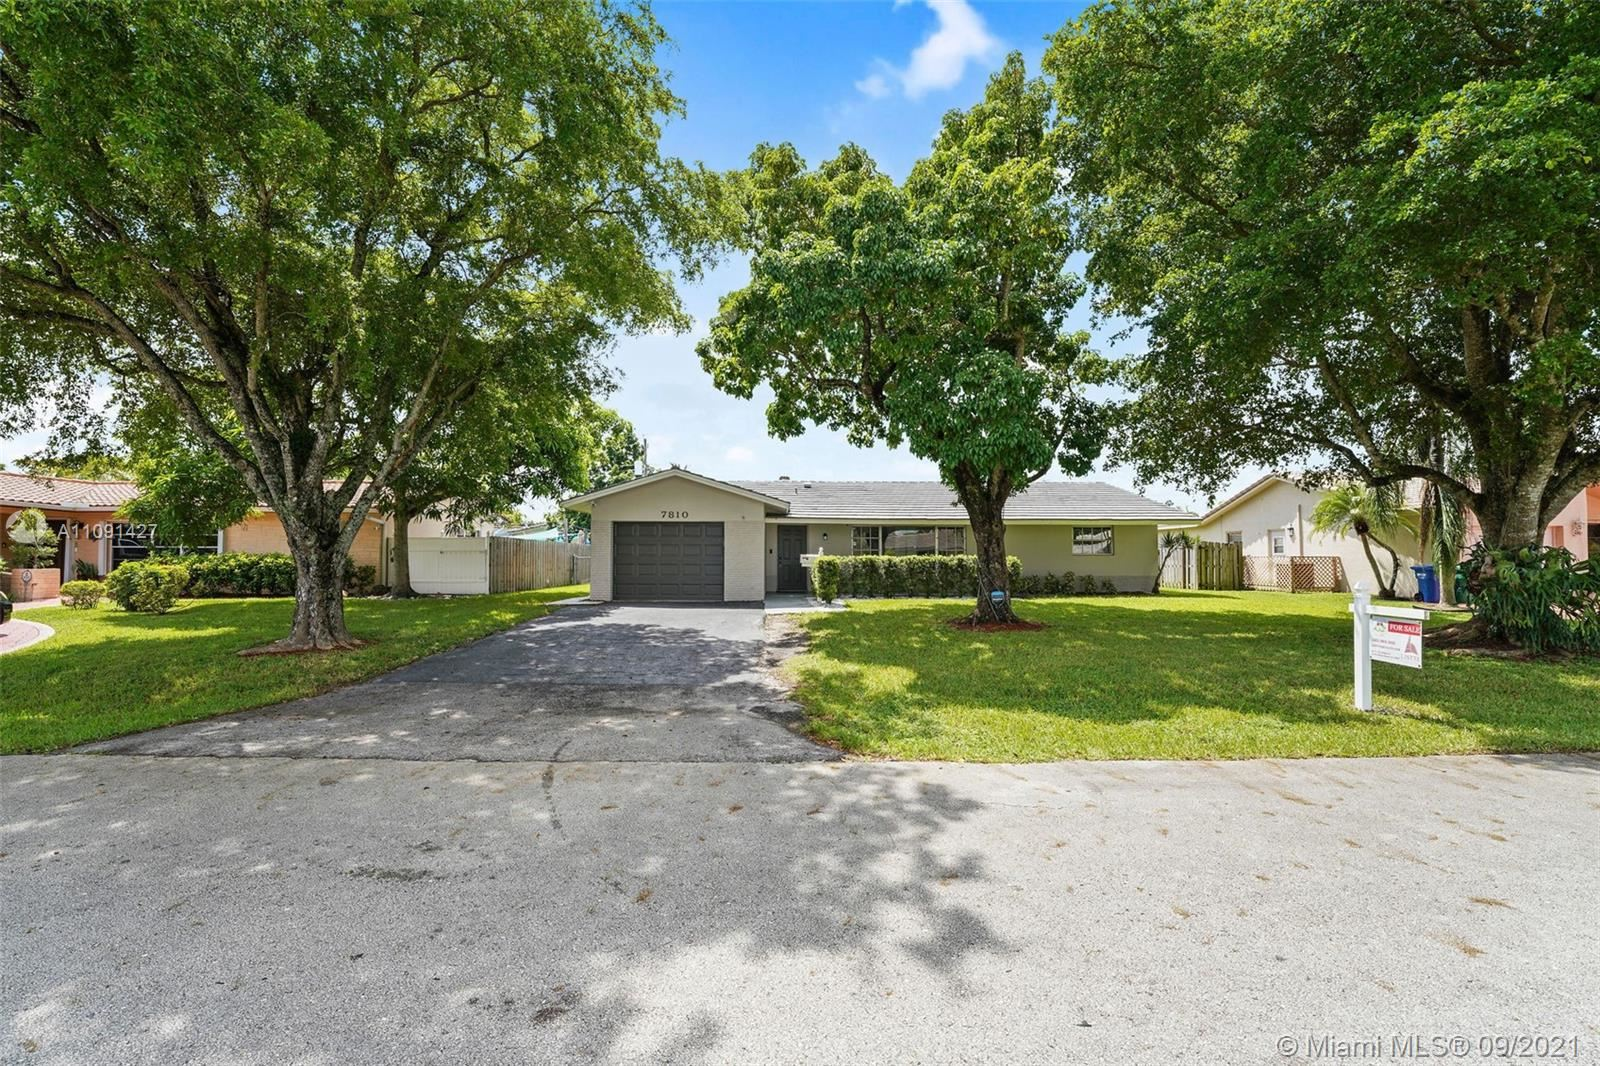 7810 NW 39th Ct, Coral Springs, FL 33065 - #: A11091427